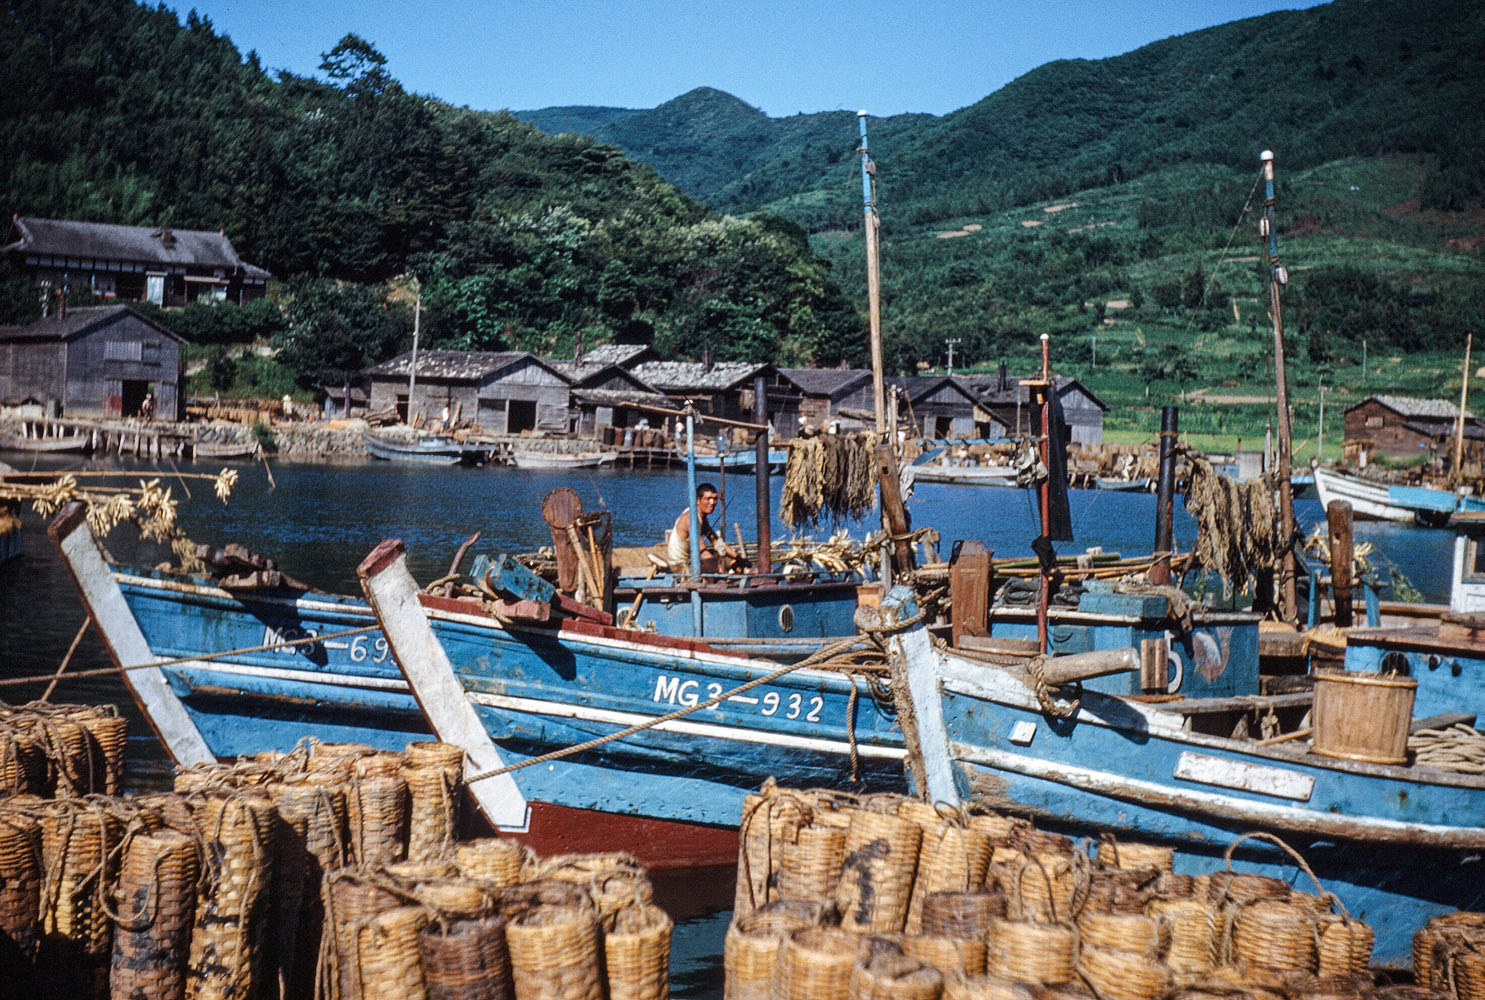 95 Boats & Straw Baskets in Harbor